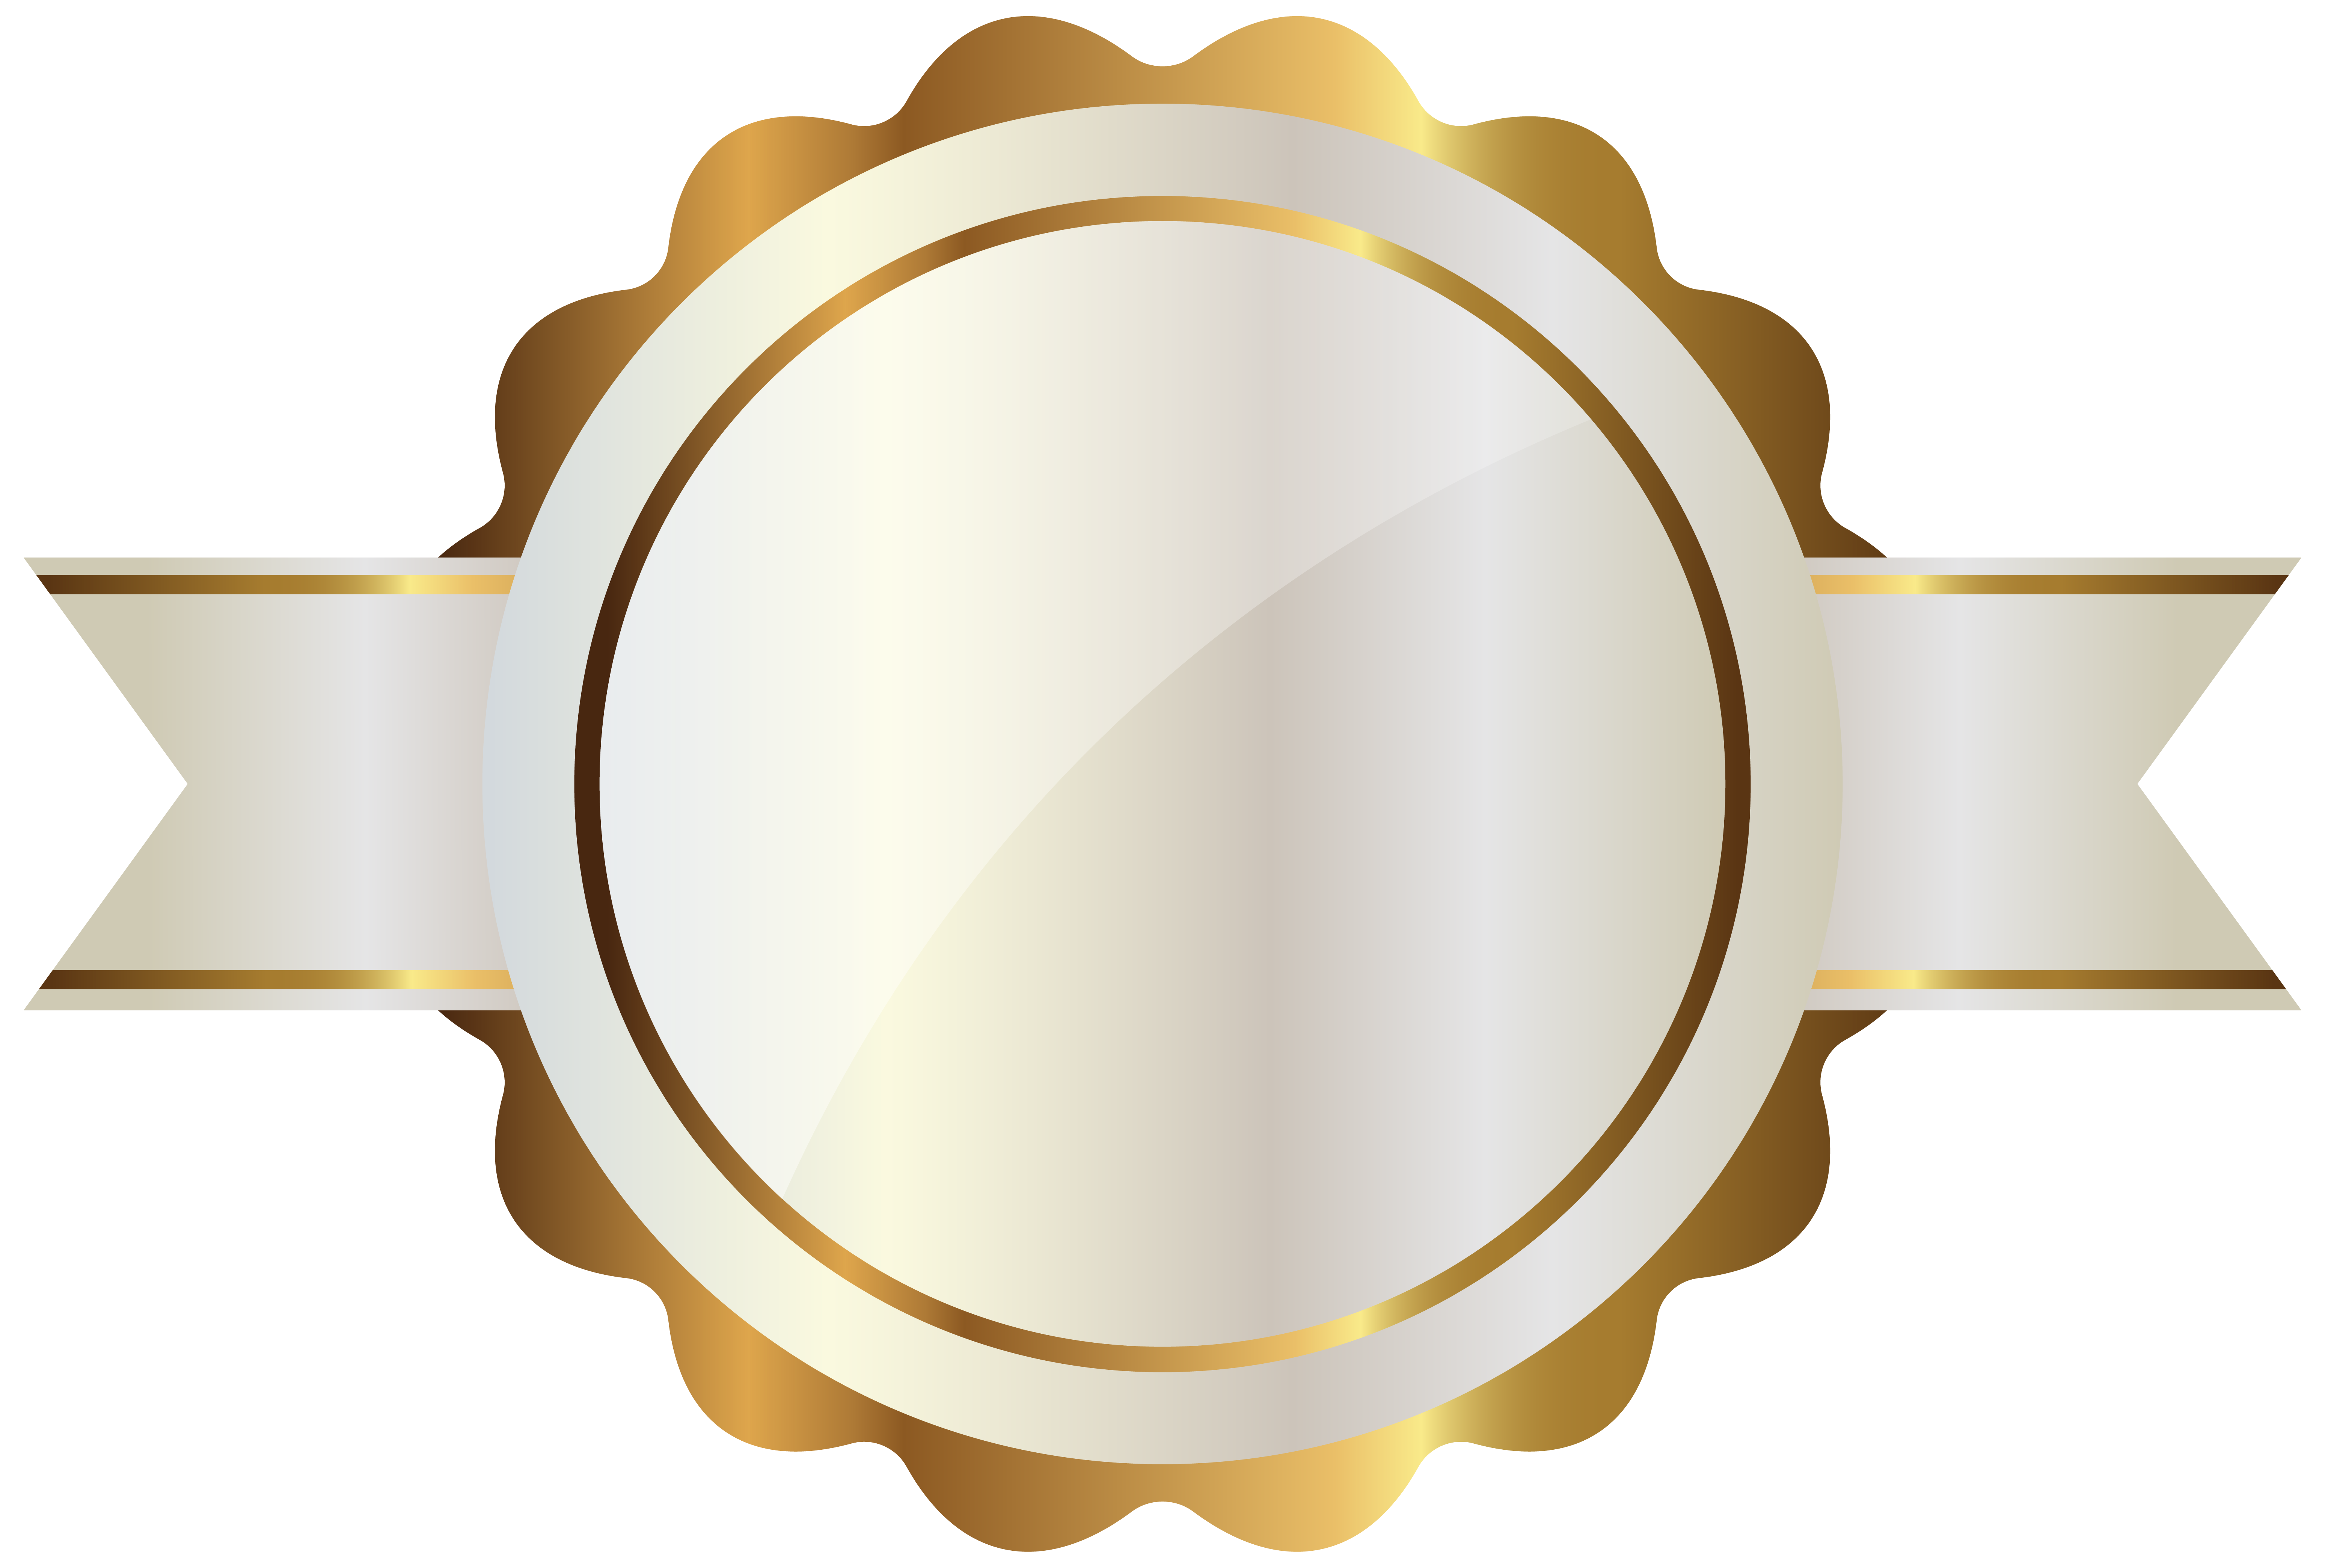 White label with gold. Clipart shield metallic